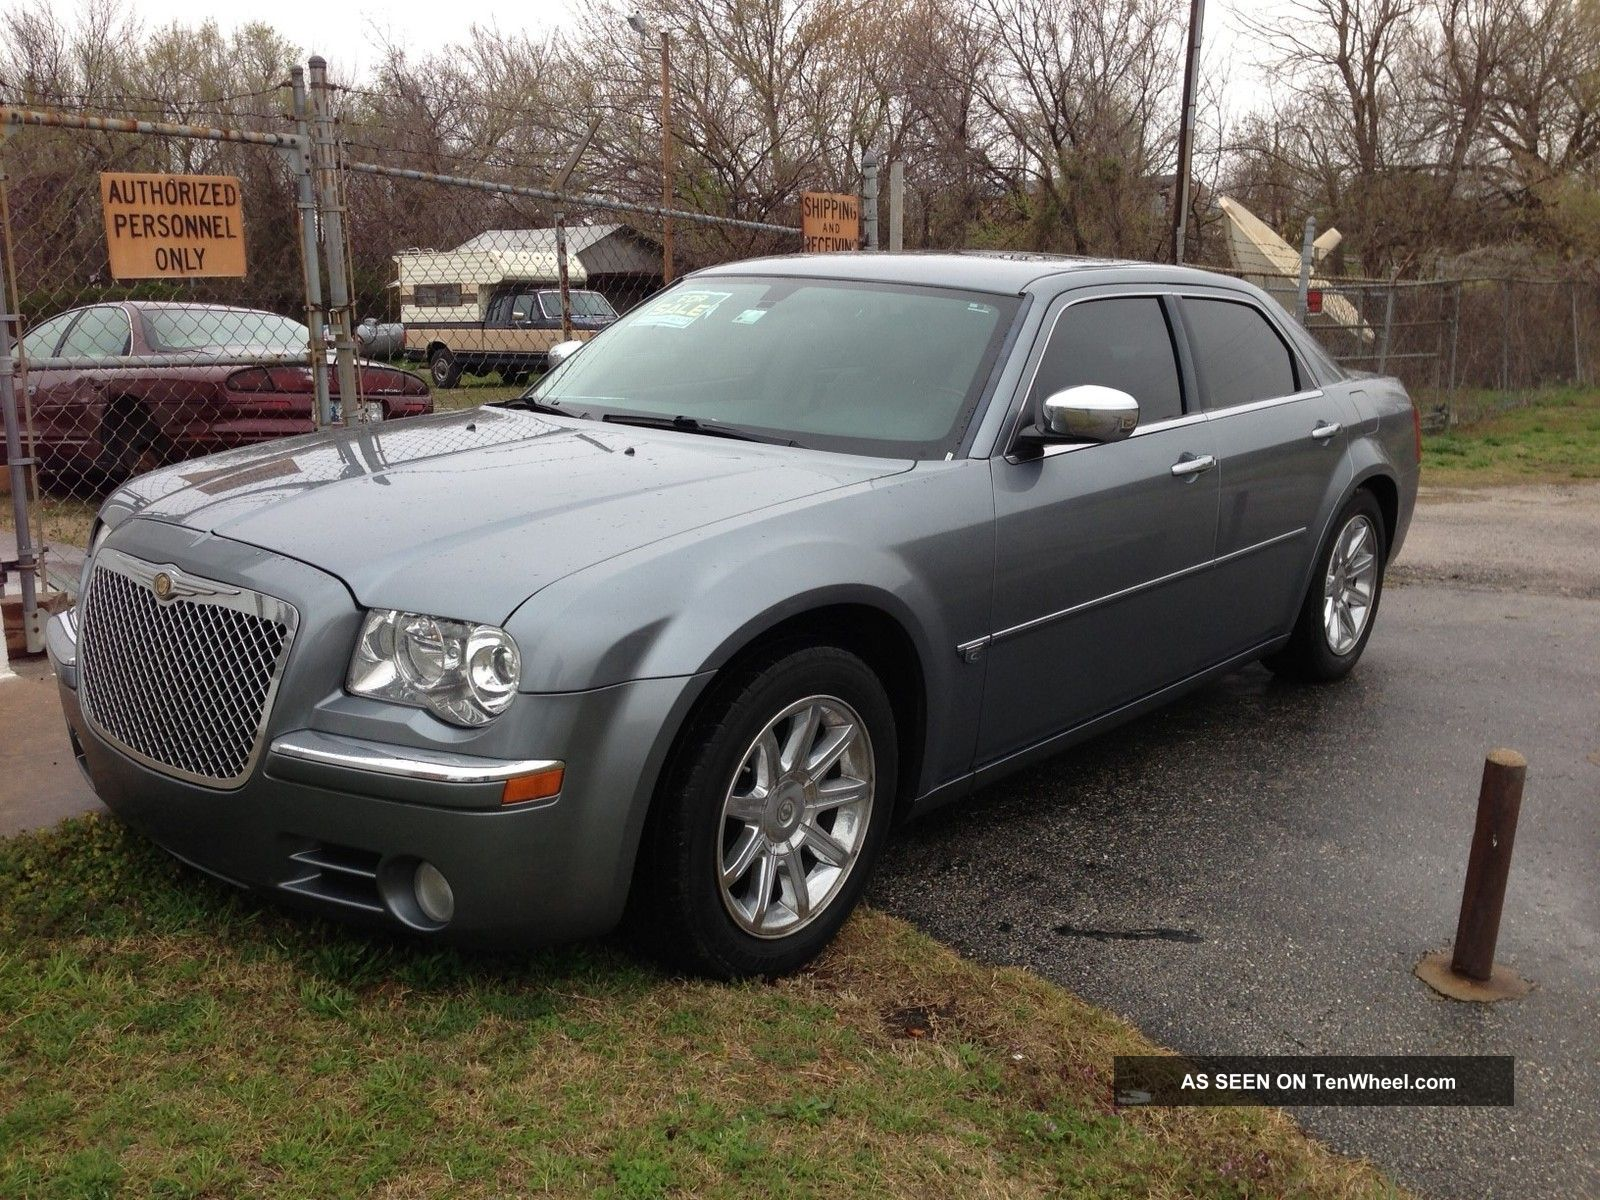 Chrysler 300c Break Parking Brake Problems Best 300 Fuse Box Price 5 7 2006 Technical Specifications Interior And Exterior Photo